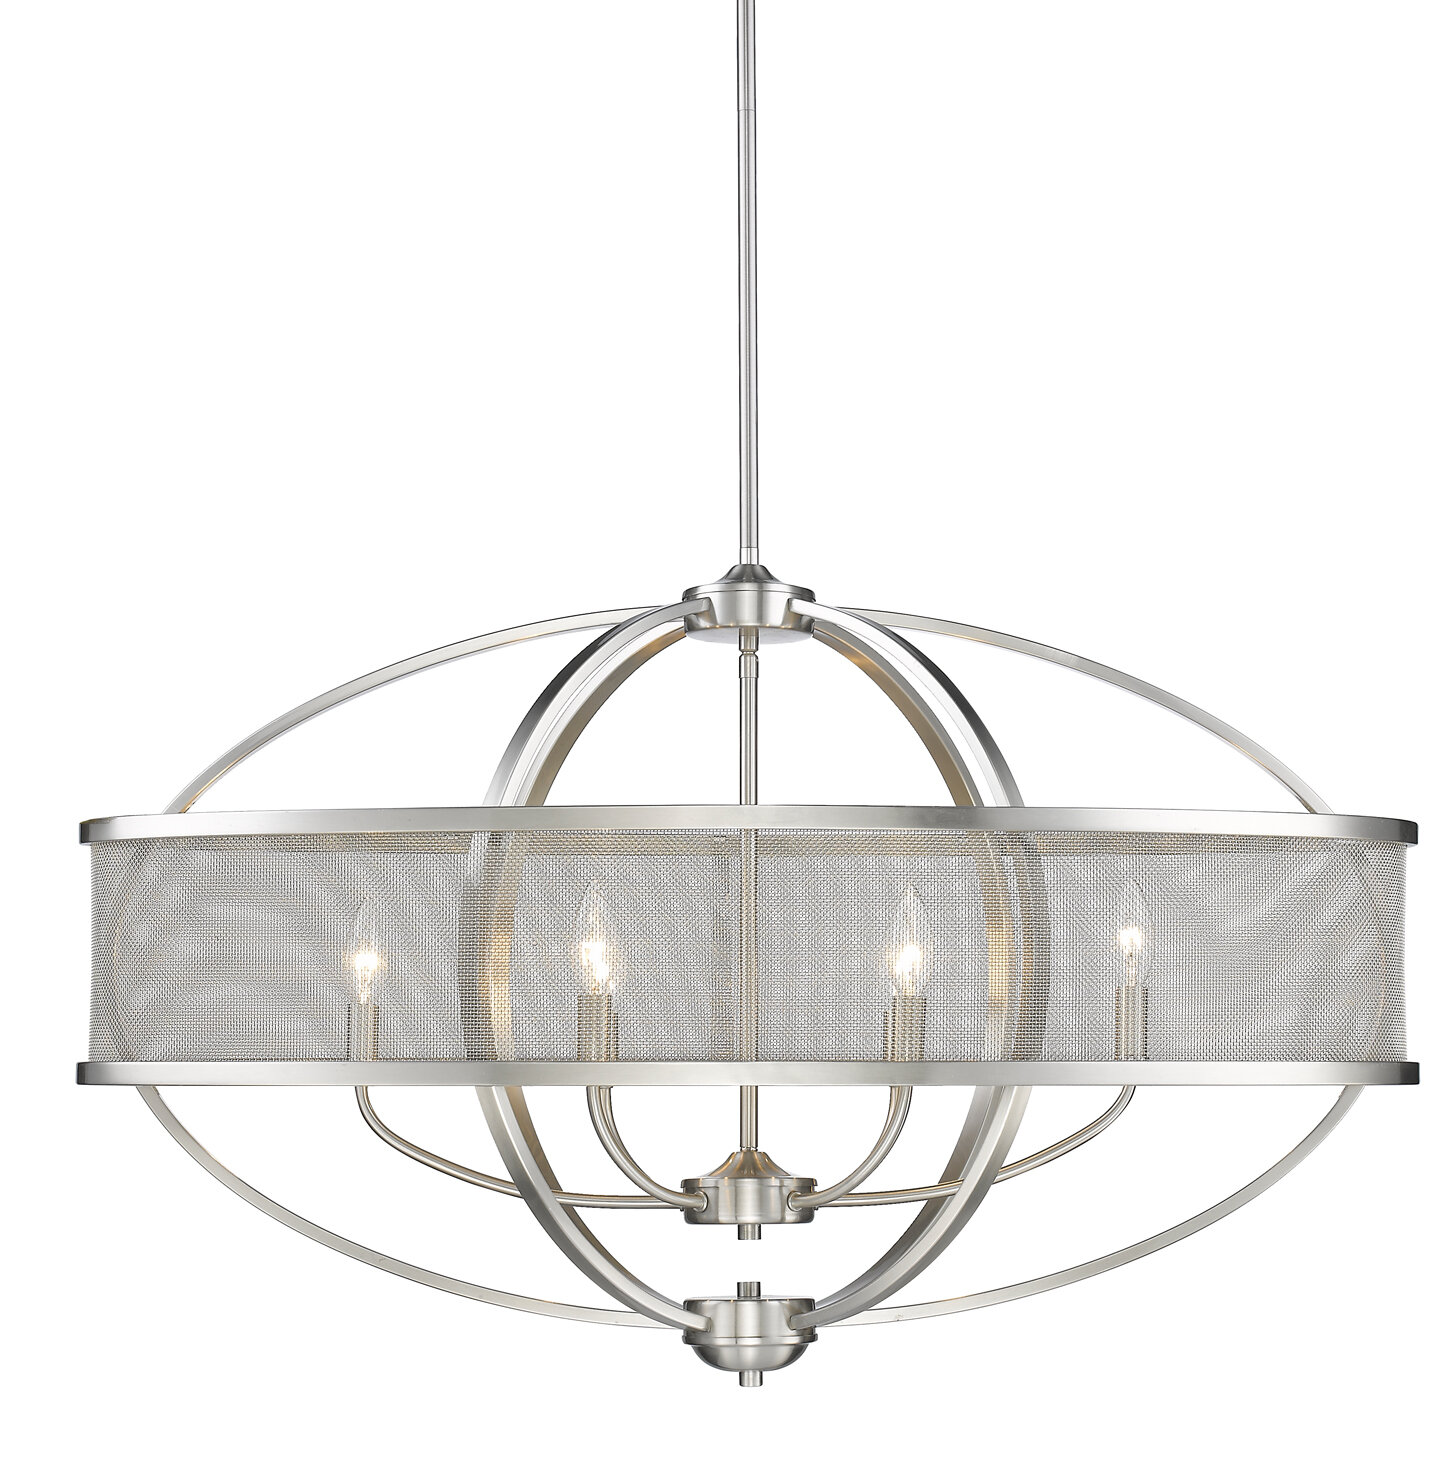 Laurel Foundry Modern Farmhouse Earlene 6 Light Candle Style Geometric Chandelier Reviews Wayfair